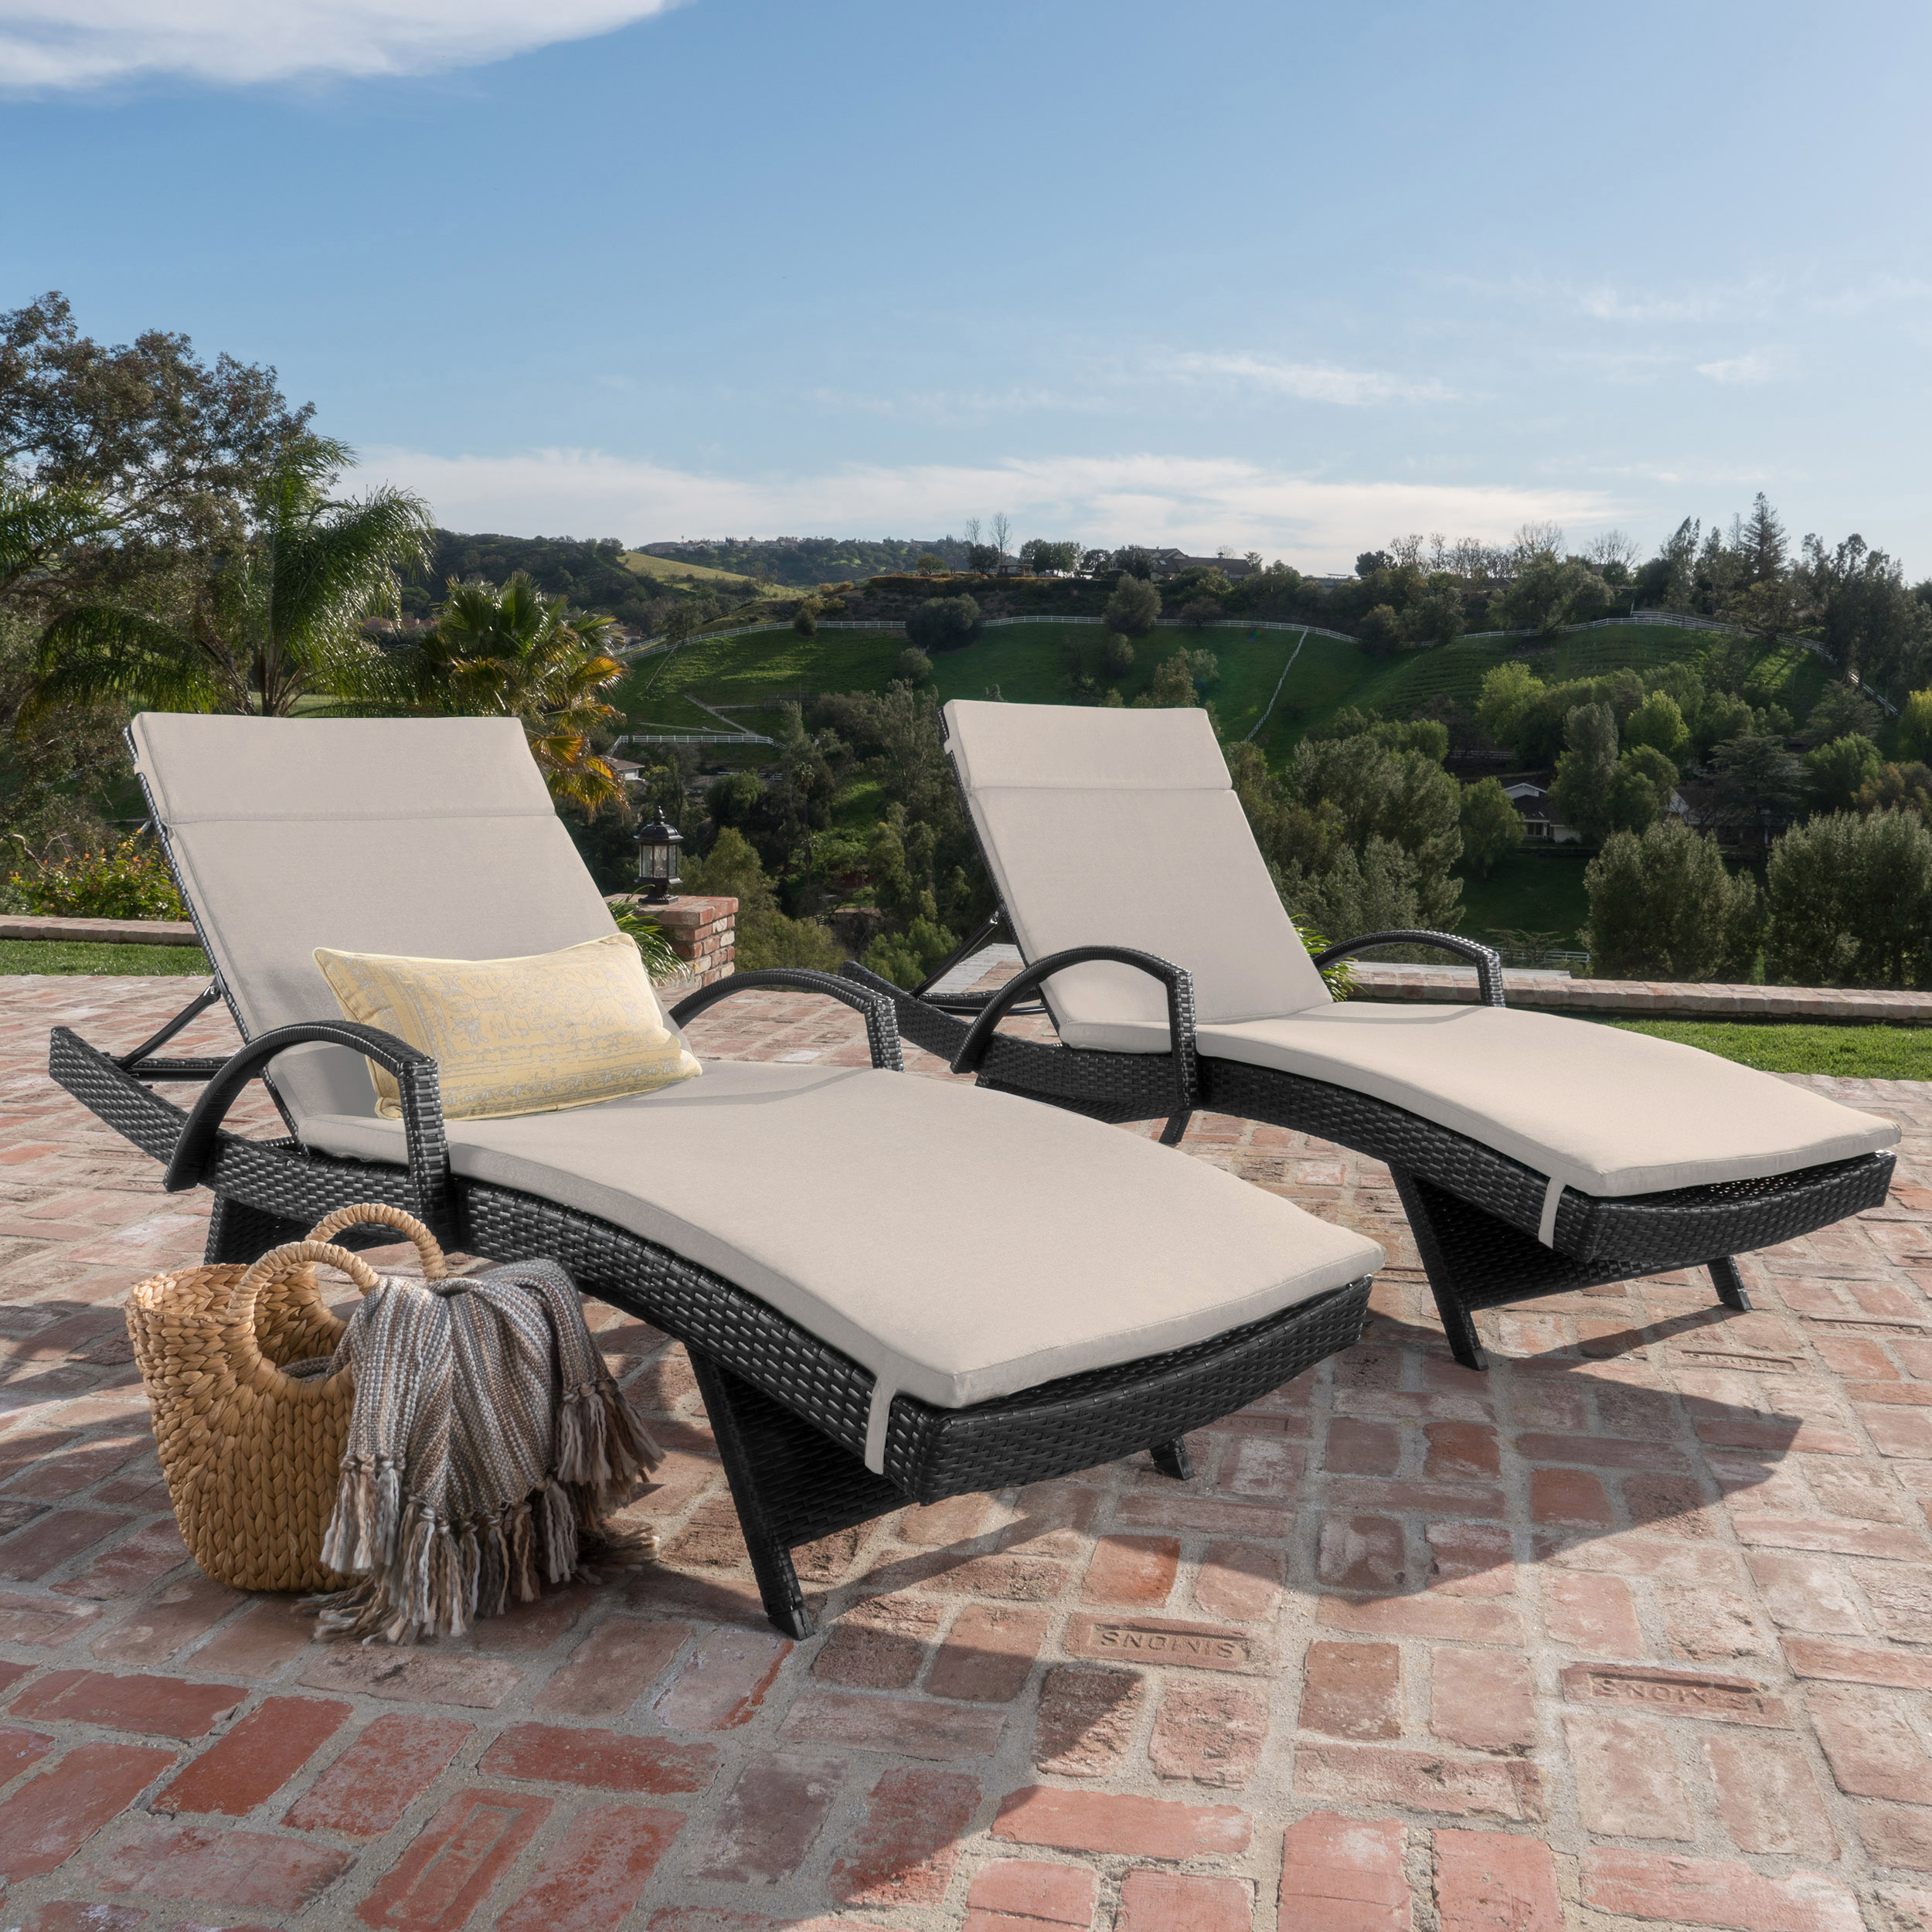 Soleil Outdoor Wicker Chaise Lounges w/ Water Resistant Cushions (Set of 2) (3)